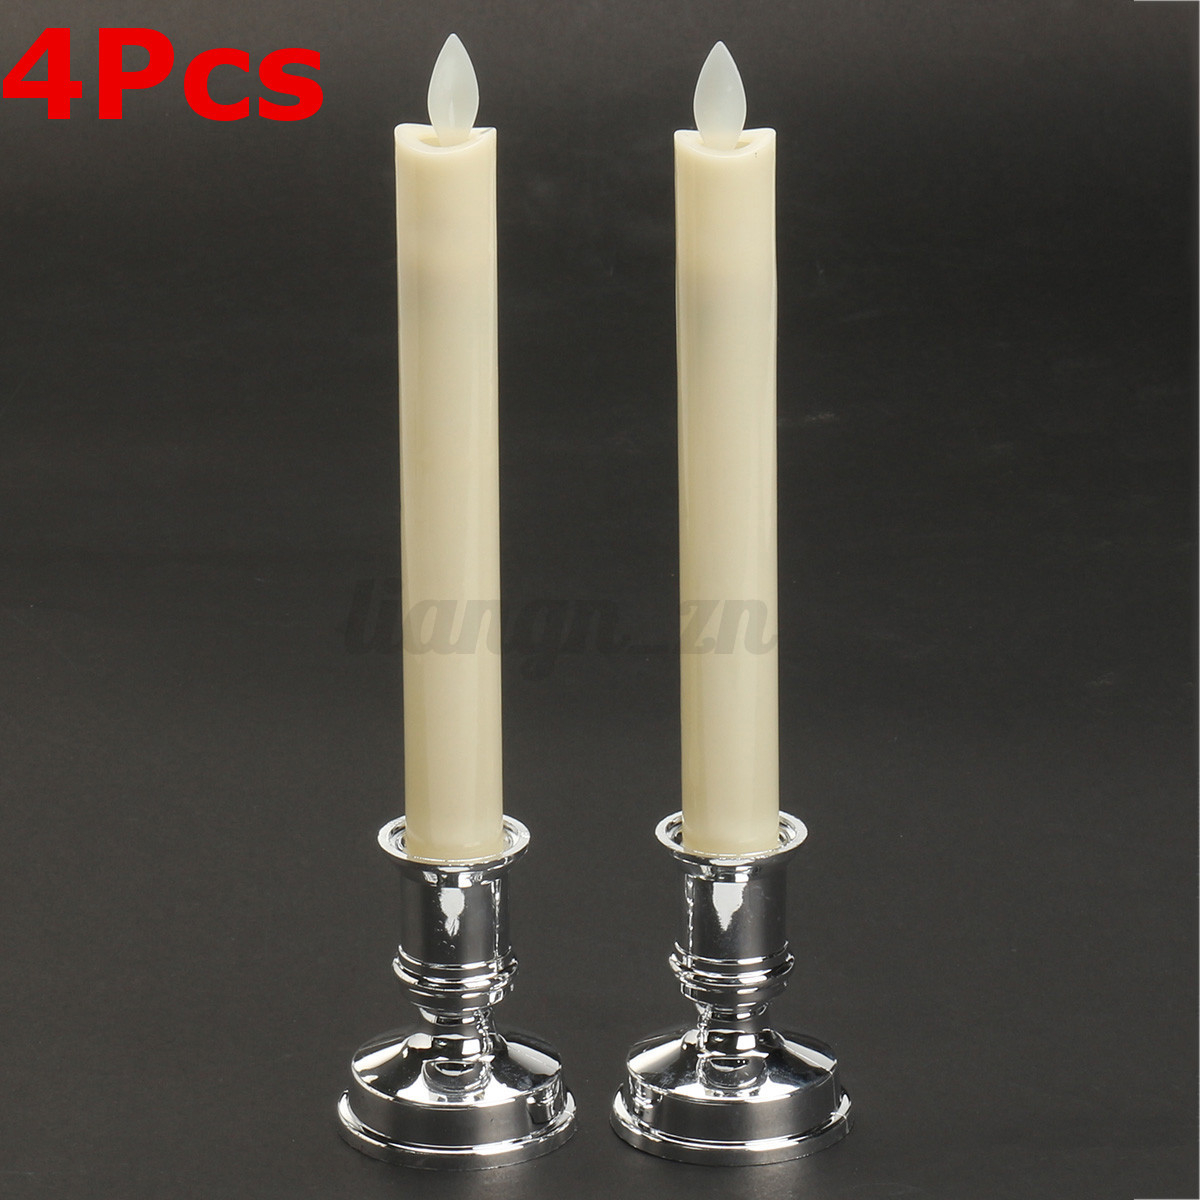 4x-LED-Dinner-Candle-Battery-Operated-Swing-Flame-Moving-Wick-5-6-25-5cm